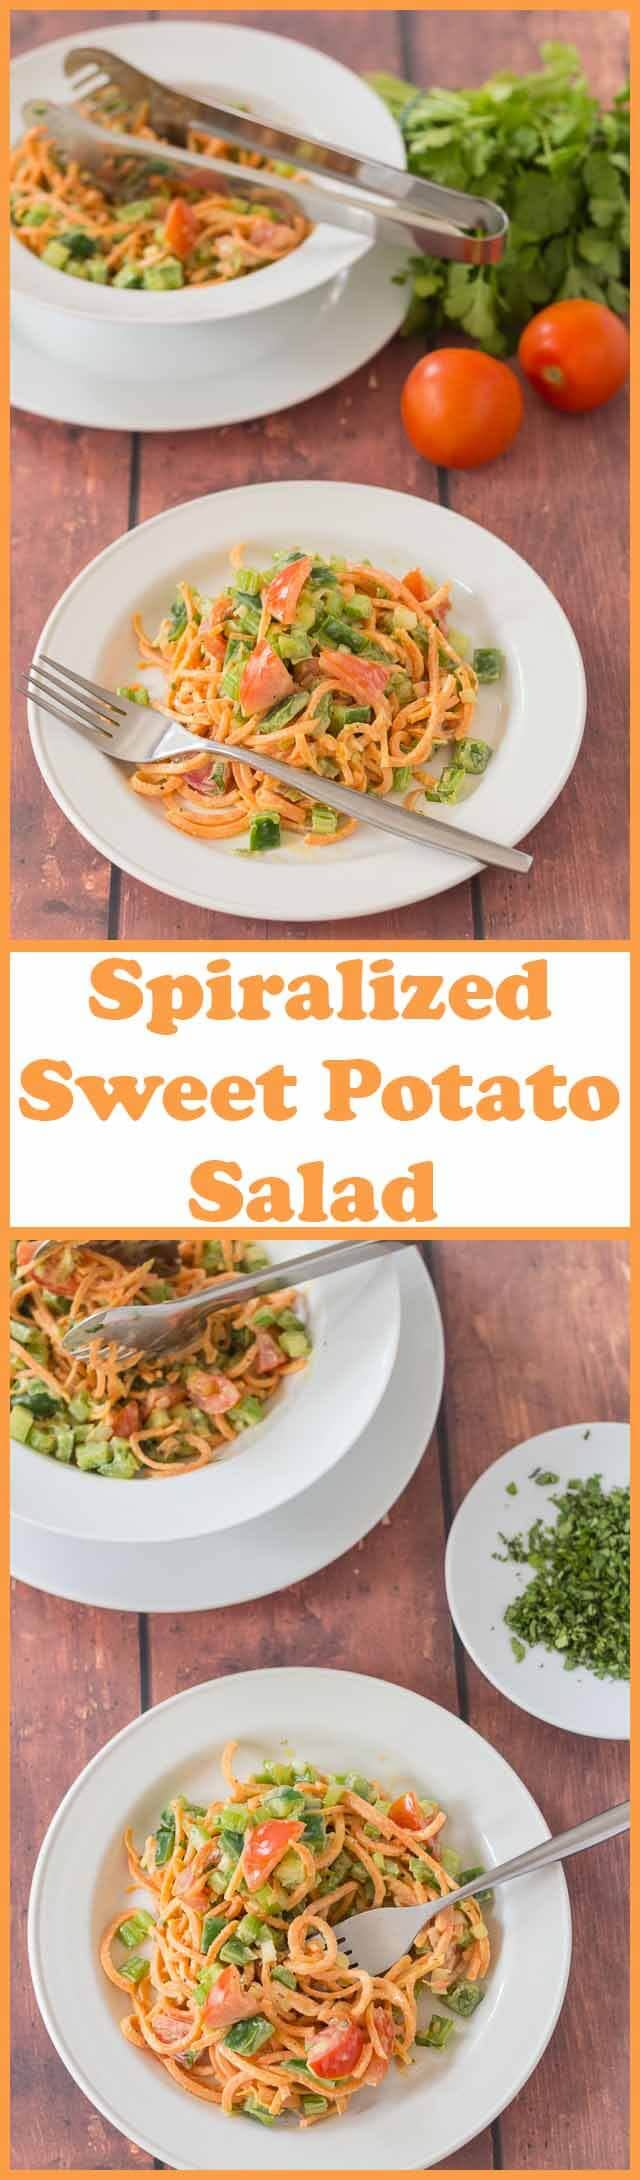 Spiralized sweet potato salad is a simple dish made with a healthier dressing compared to other salad dressing options. It's easy to make, a great way to use up leftovers and can be served as a main course or as a side!